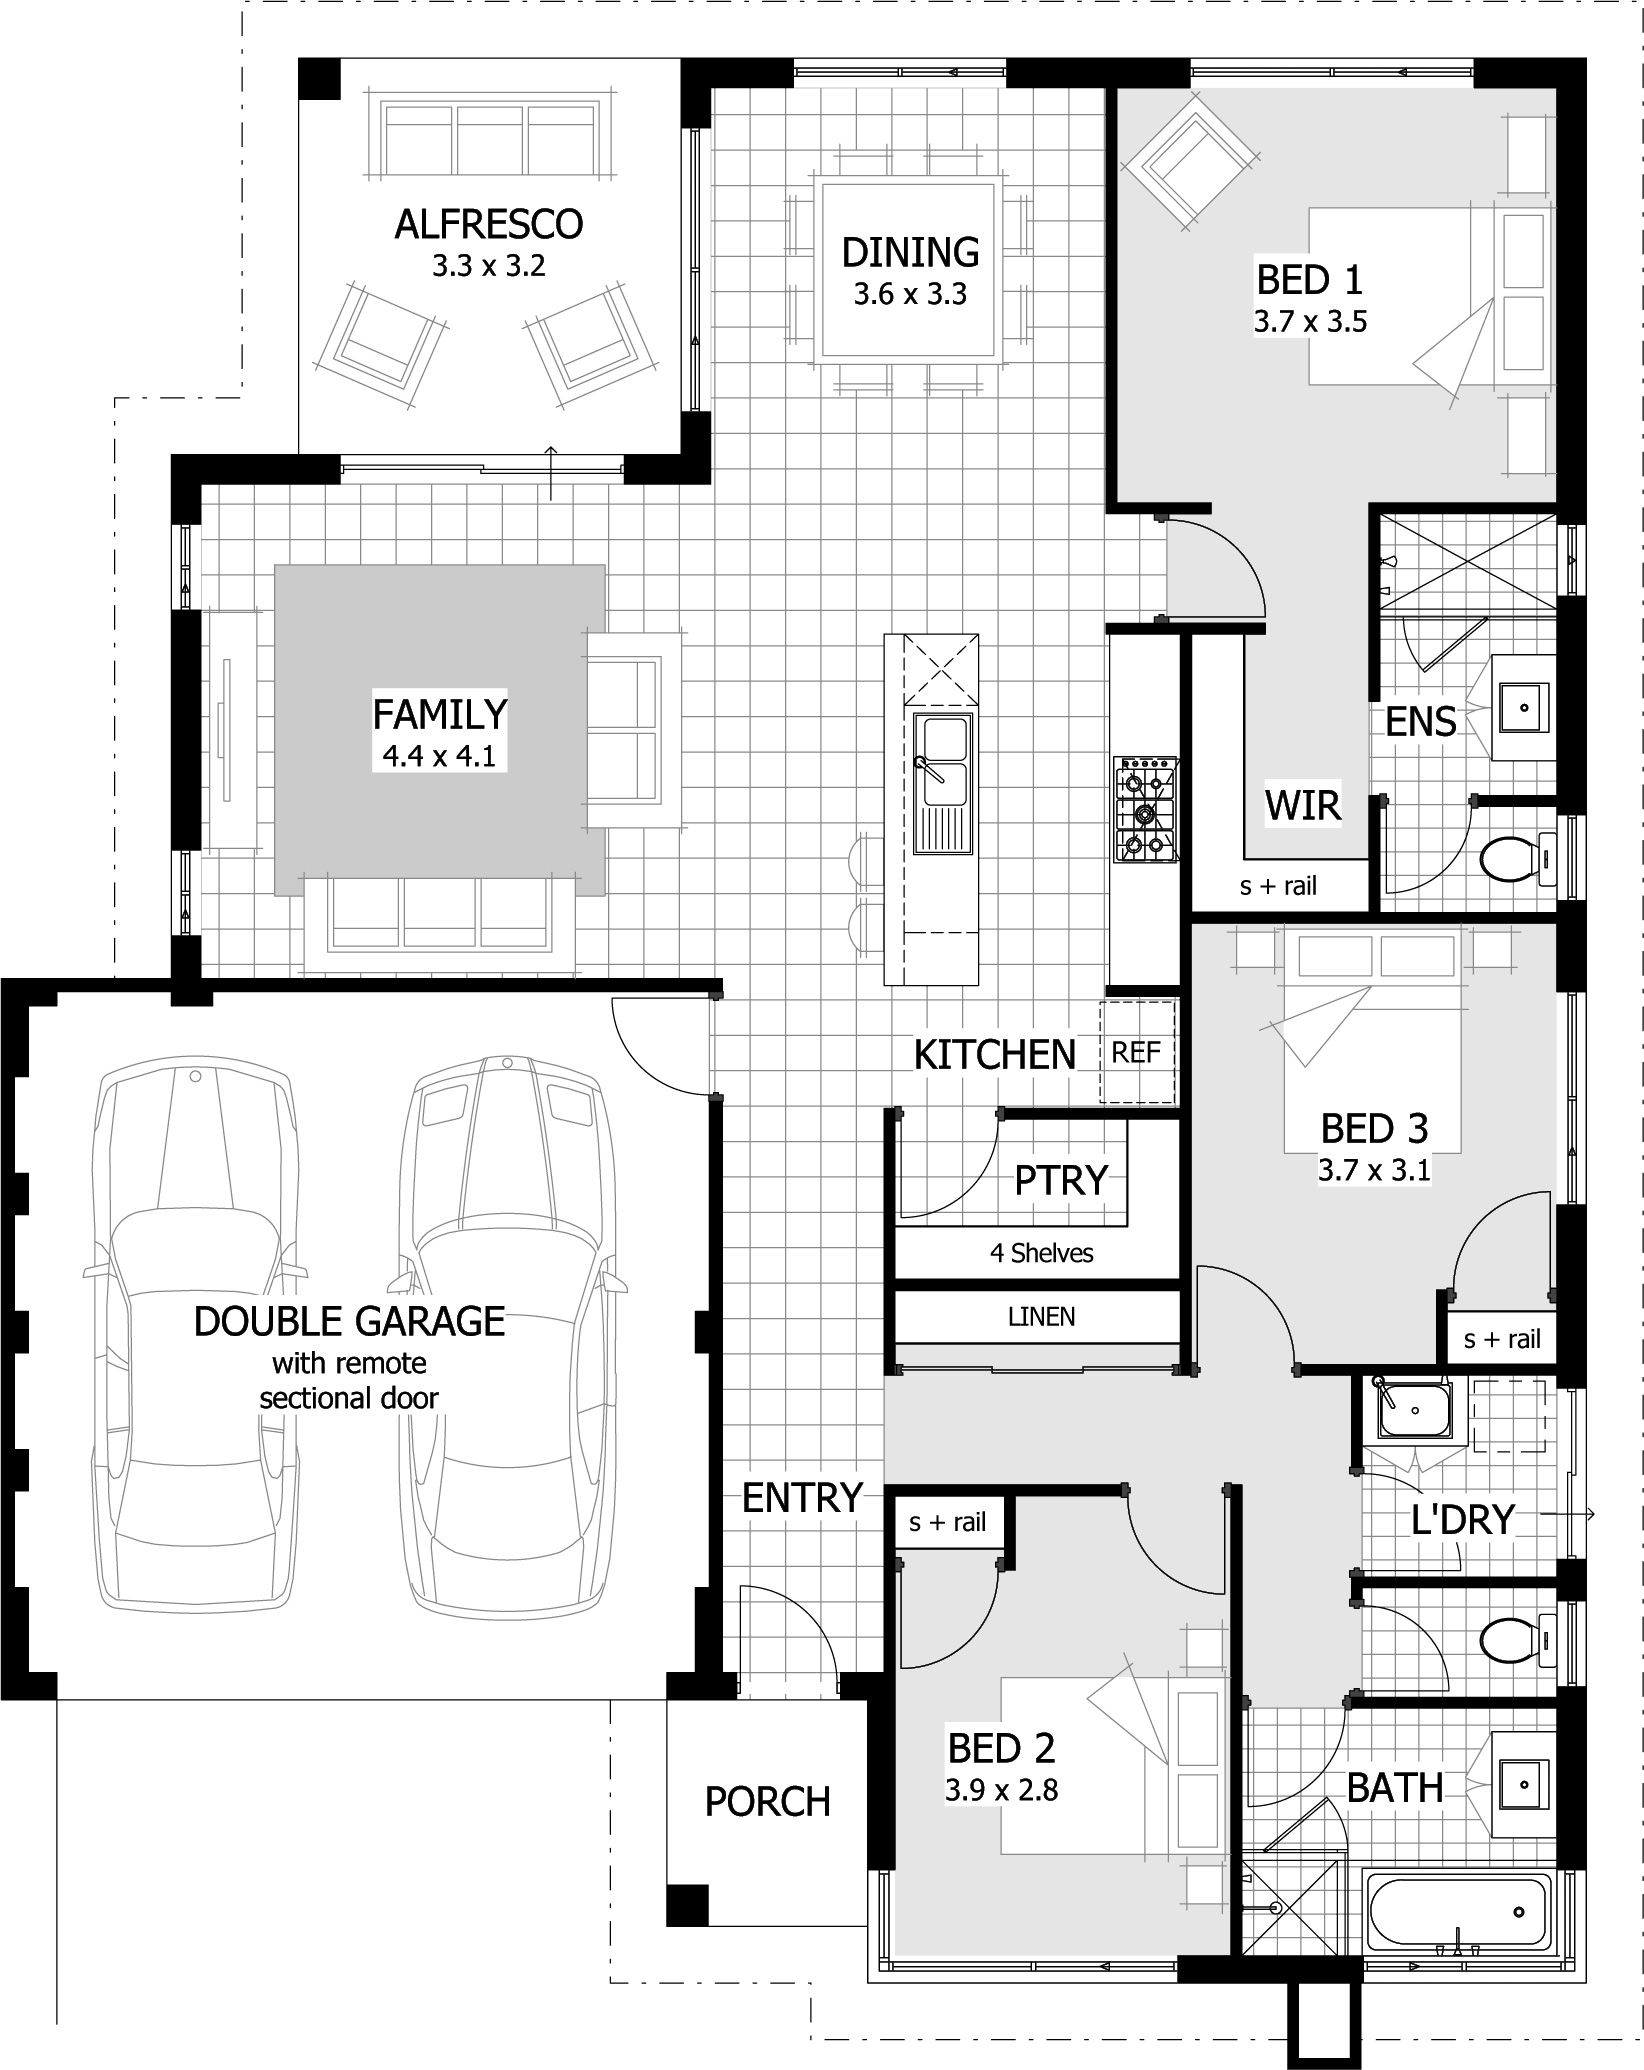 Find A 3 Bedroom Home Thatu0027s Right For Your From Our Current Range Of Home  Designs Part 21